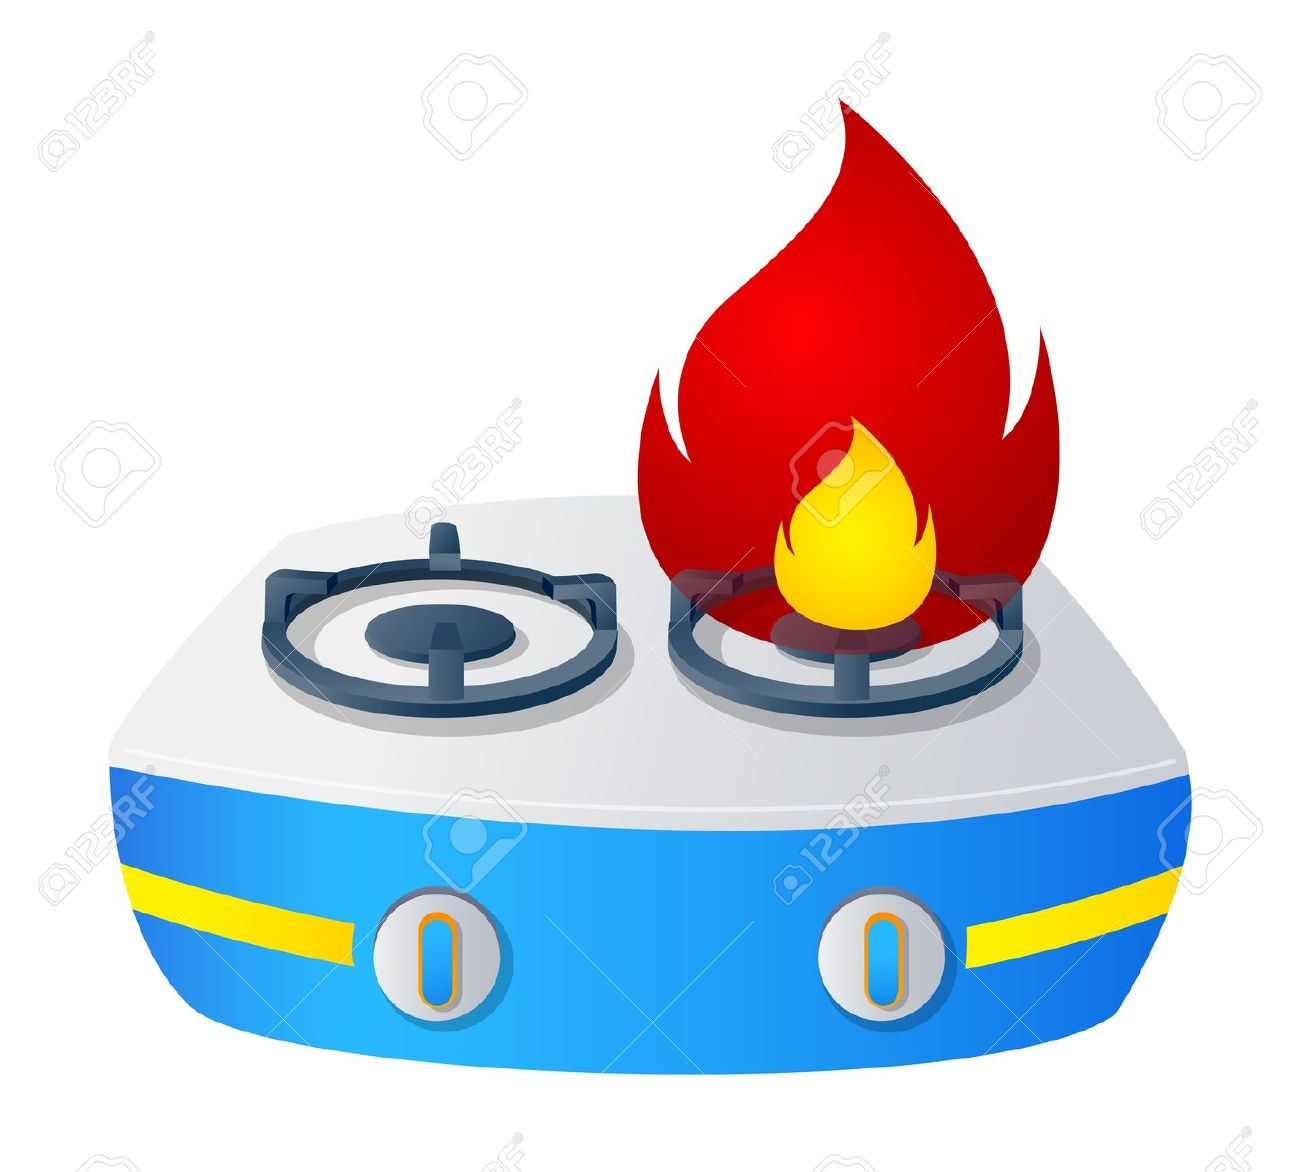 Cooking gas clipart.